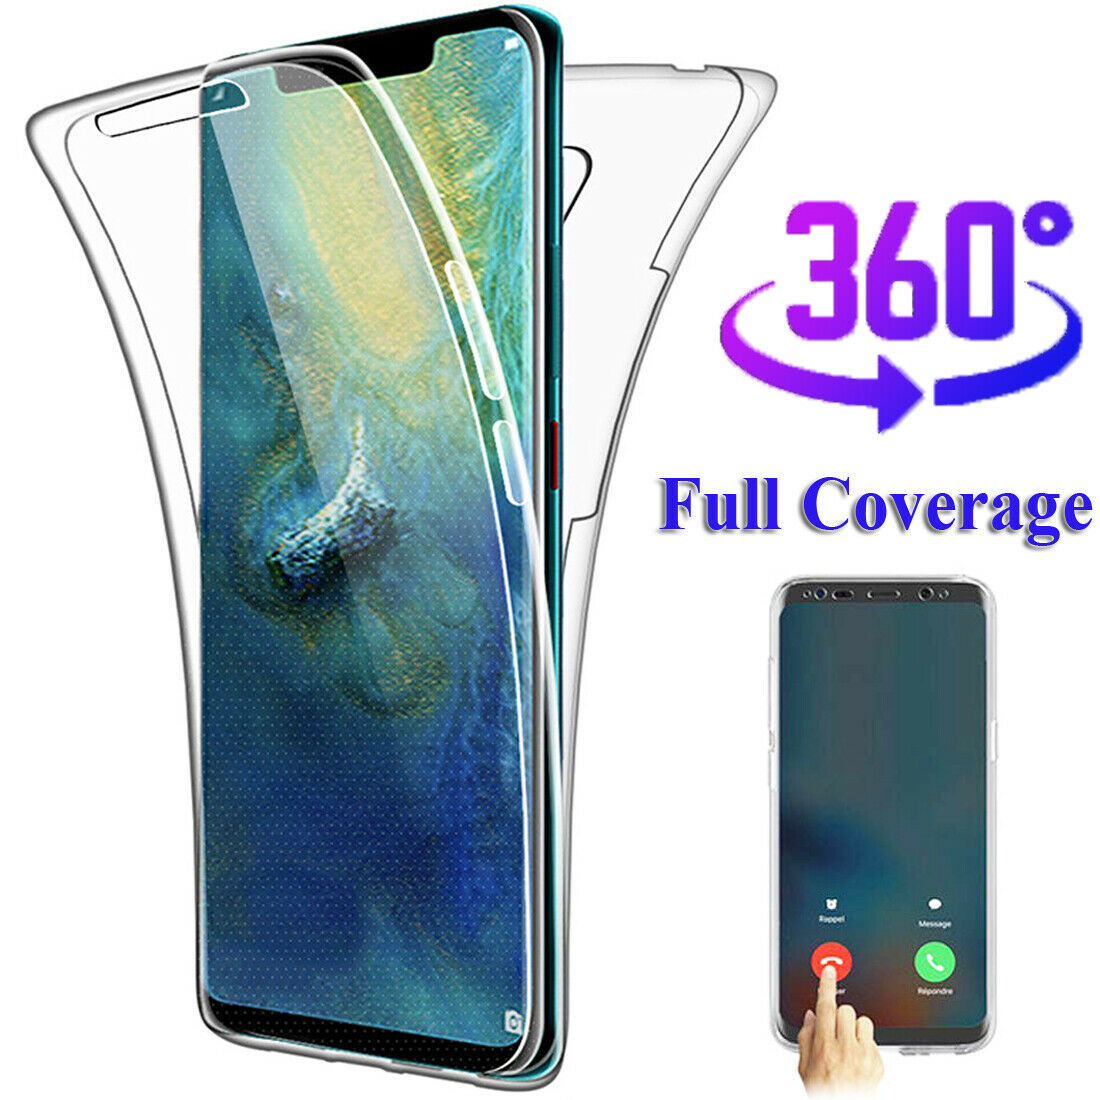 360° Full Protective Silicone Case Cover for Samsung Galaxy S10 Plus/S10e/S8 S9+